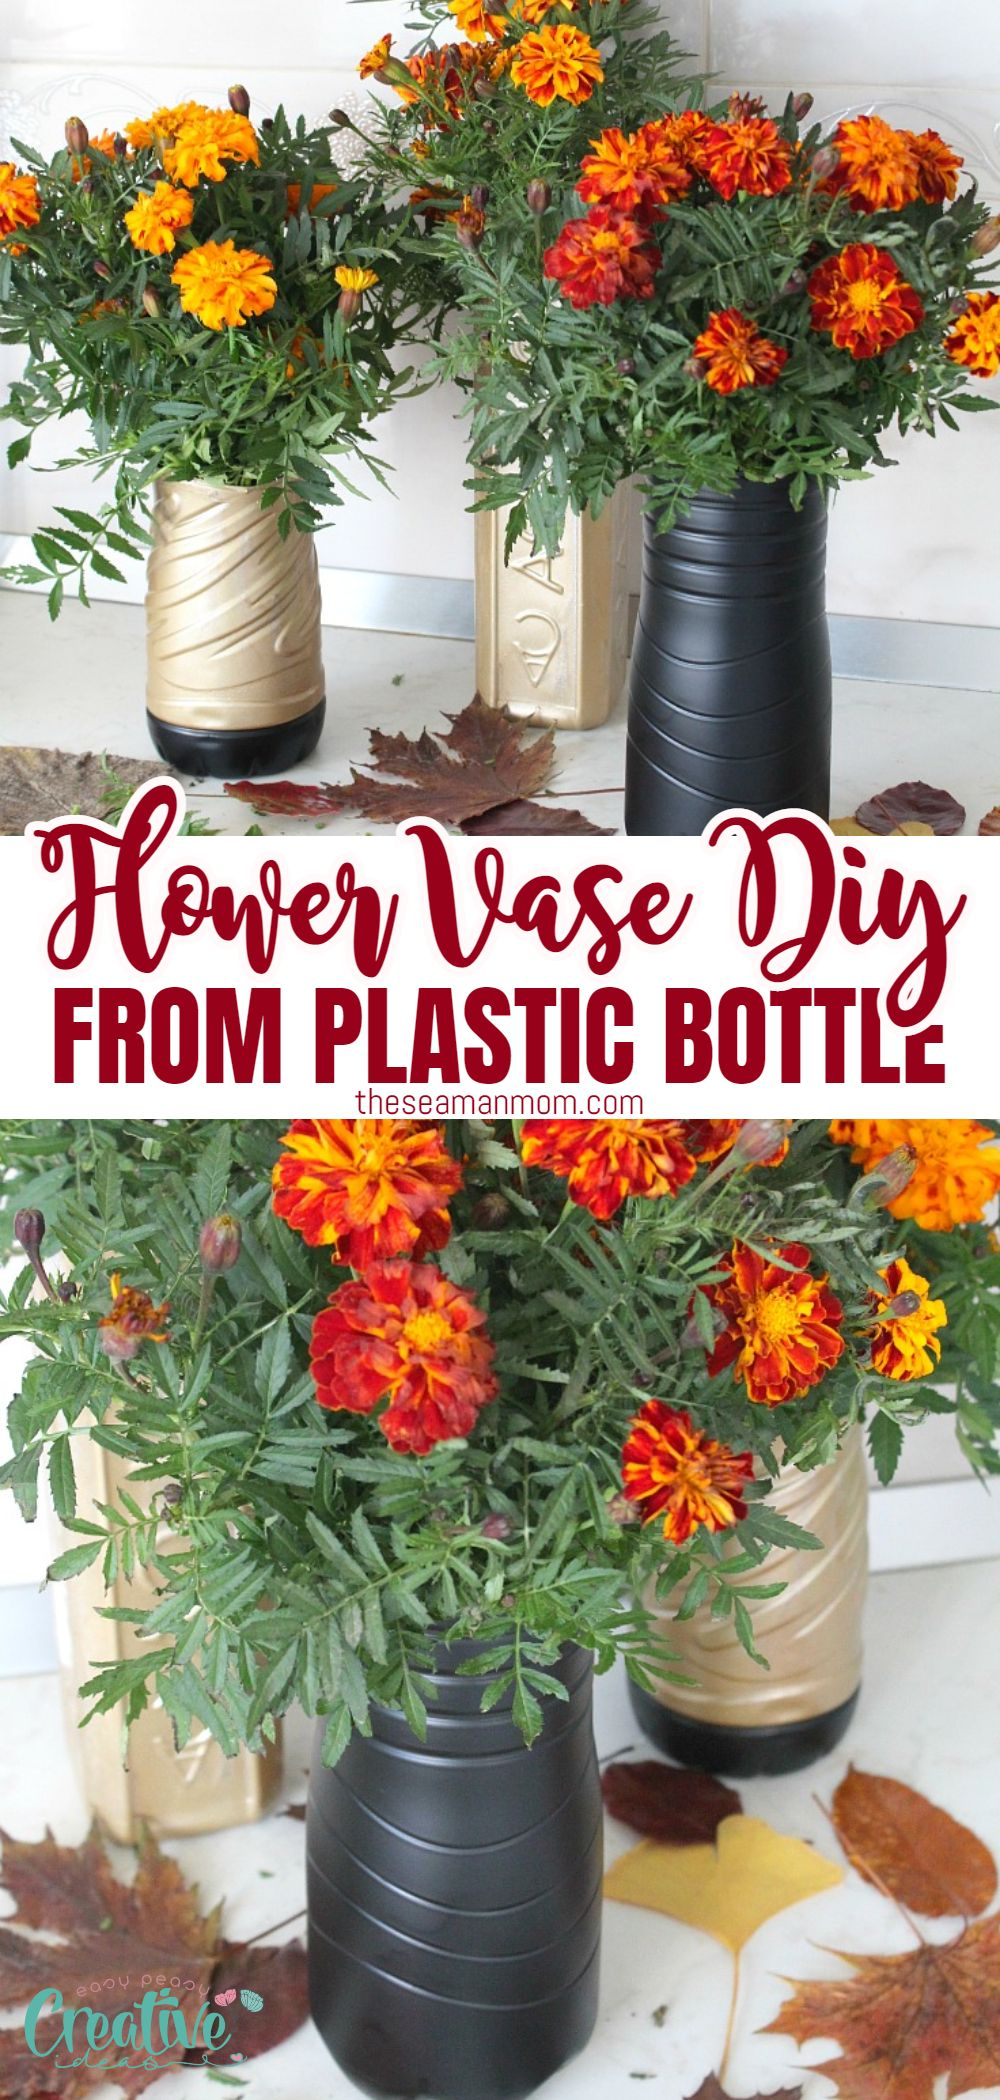 Make your own recycled vase using this super easy tutorial for a plastic flower vase from plastic bottle! If you didn't know better, you'd swear this handmade flower vase was made out of crystal or glass! via @petroneagu